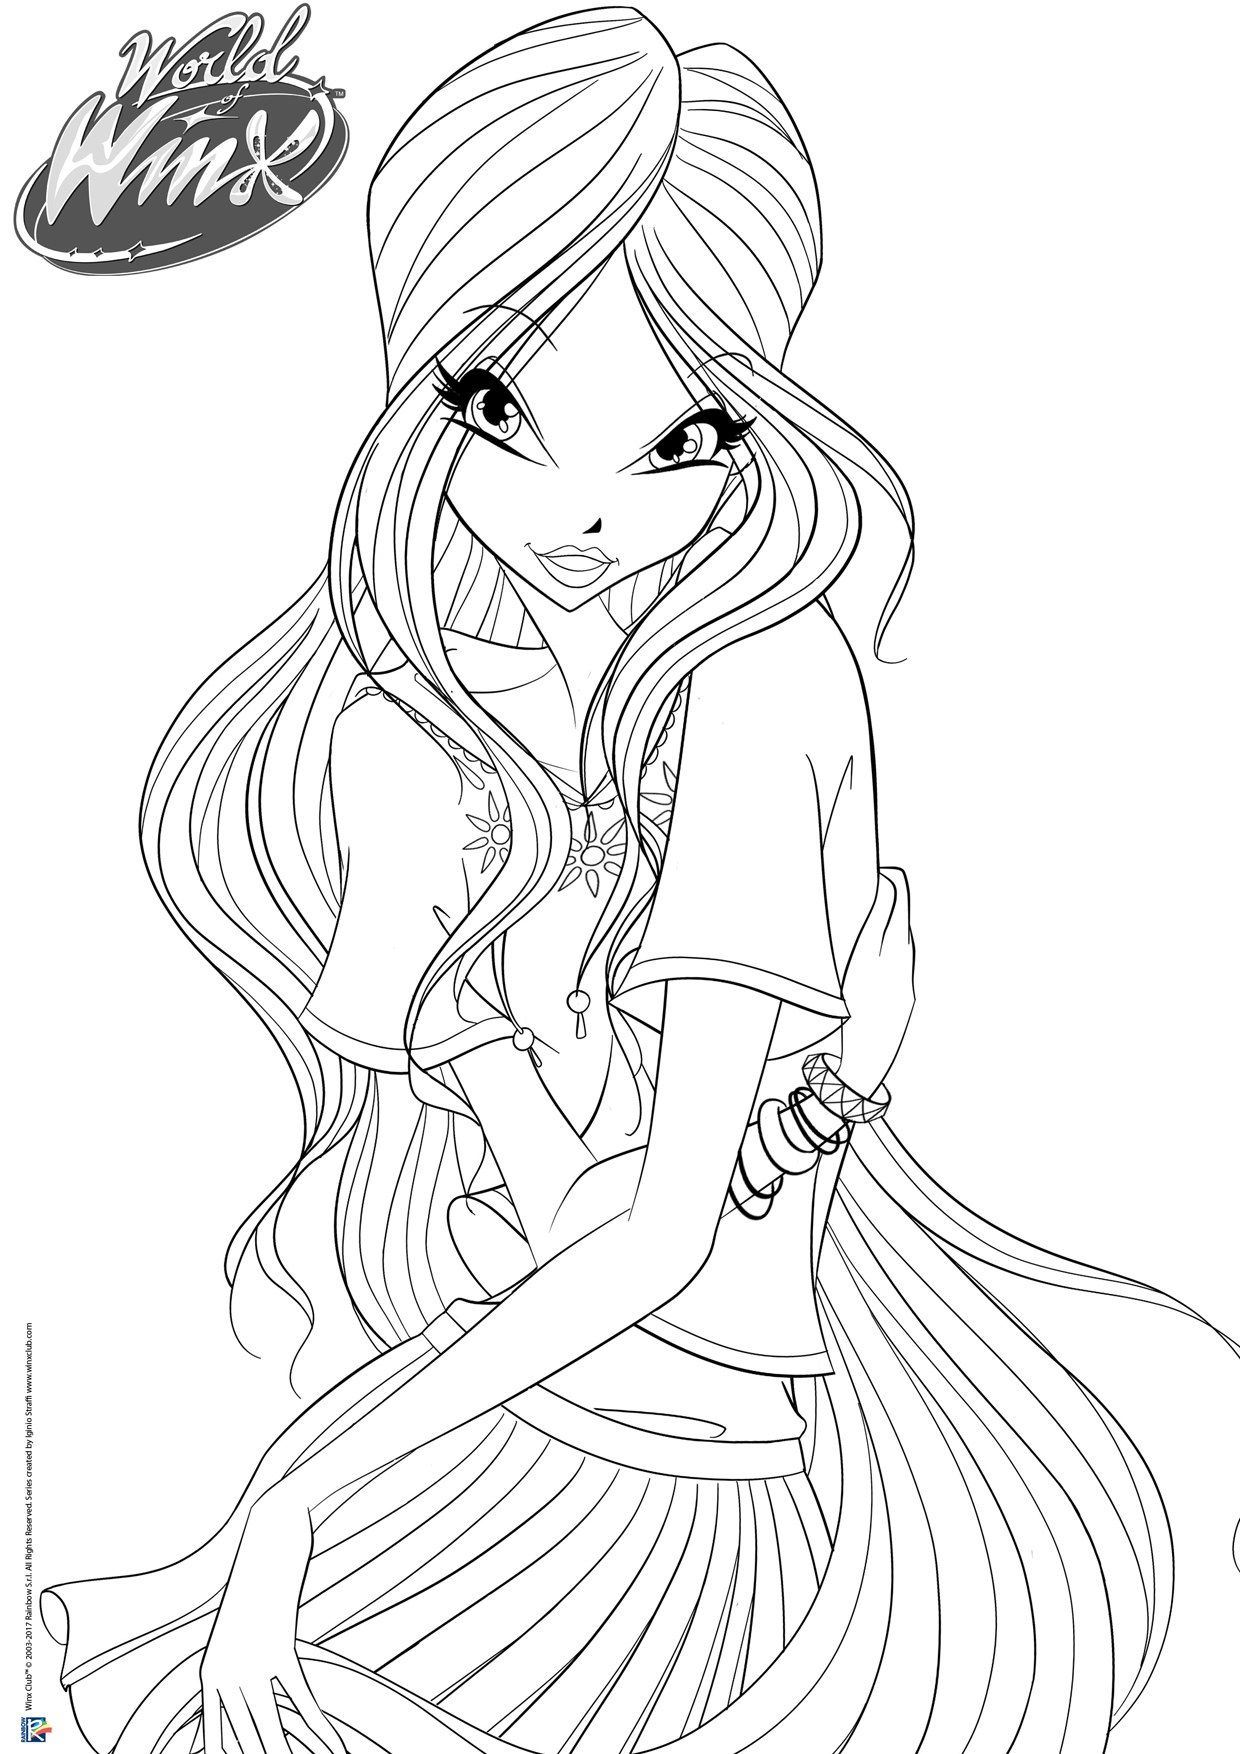 Pin By David M On Winx Club Winx Club Club Colouring Pages